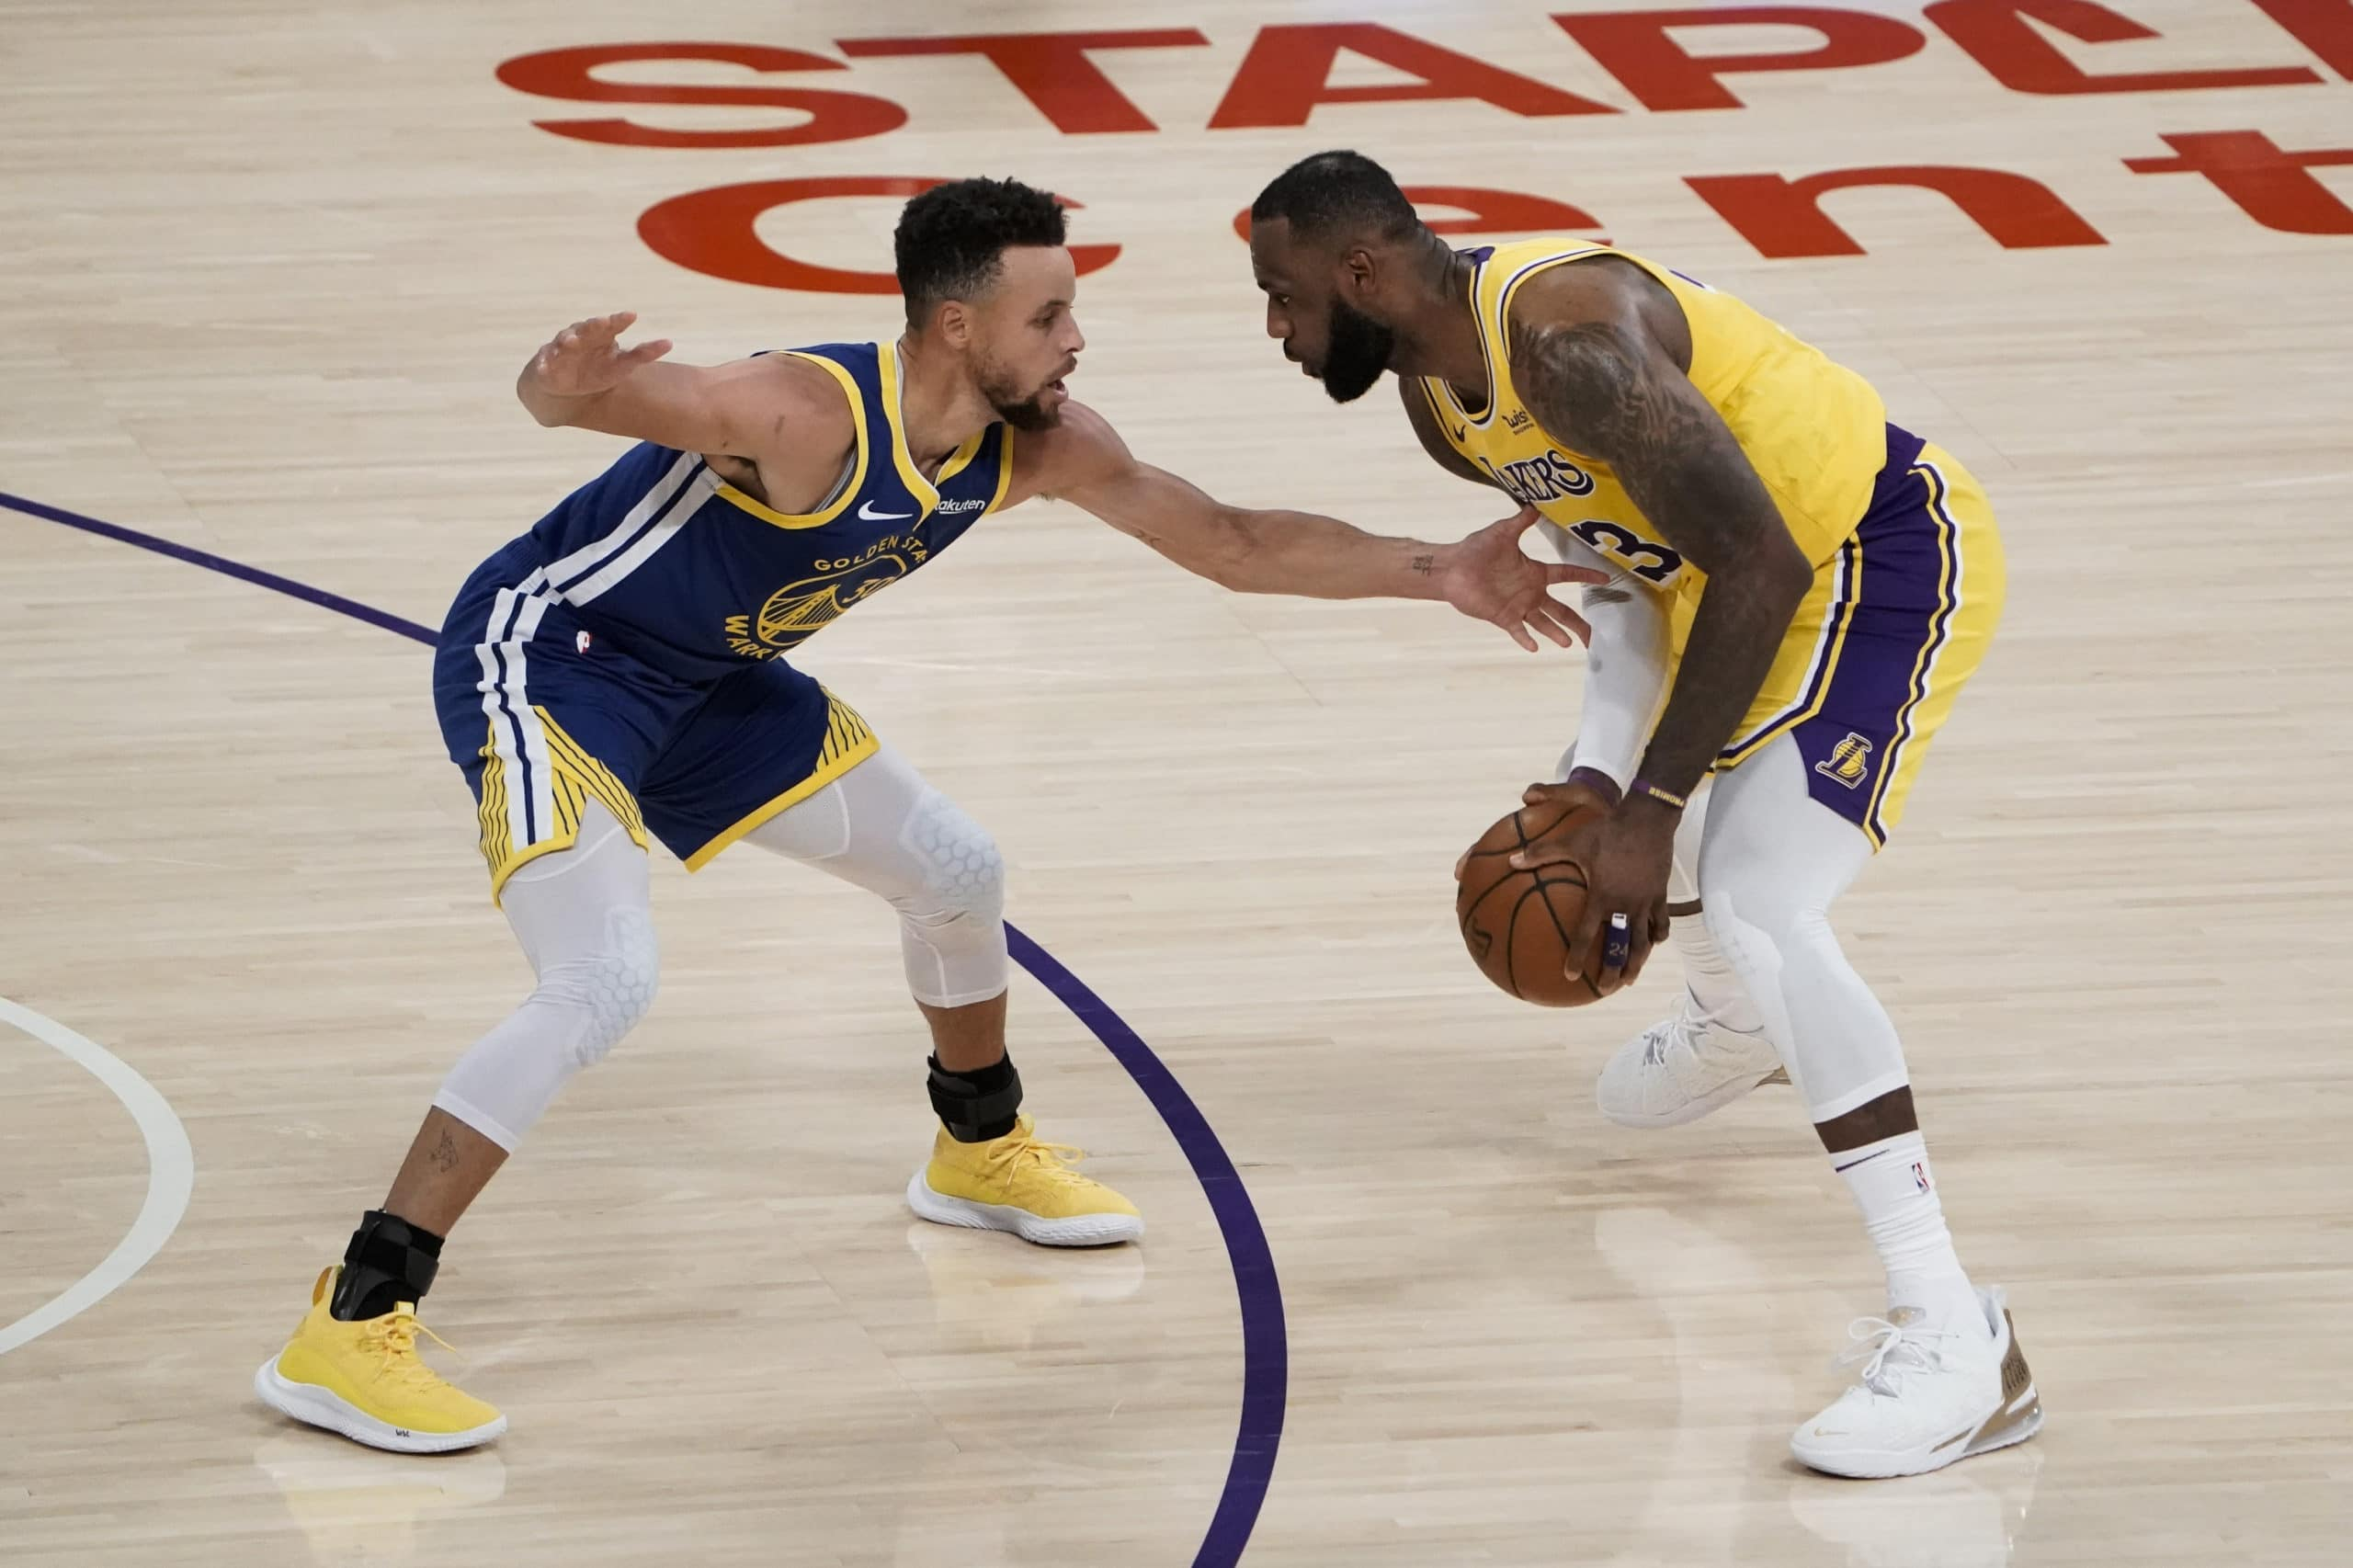 lakers-lebron-james-says-warriors-stephen-curry-ought-to-smooth-discover-2020-21-nba-mvp-award.jpg